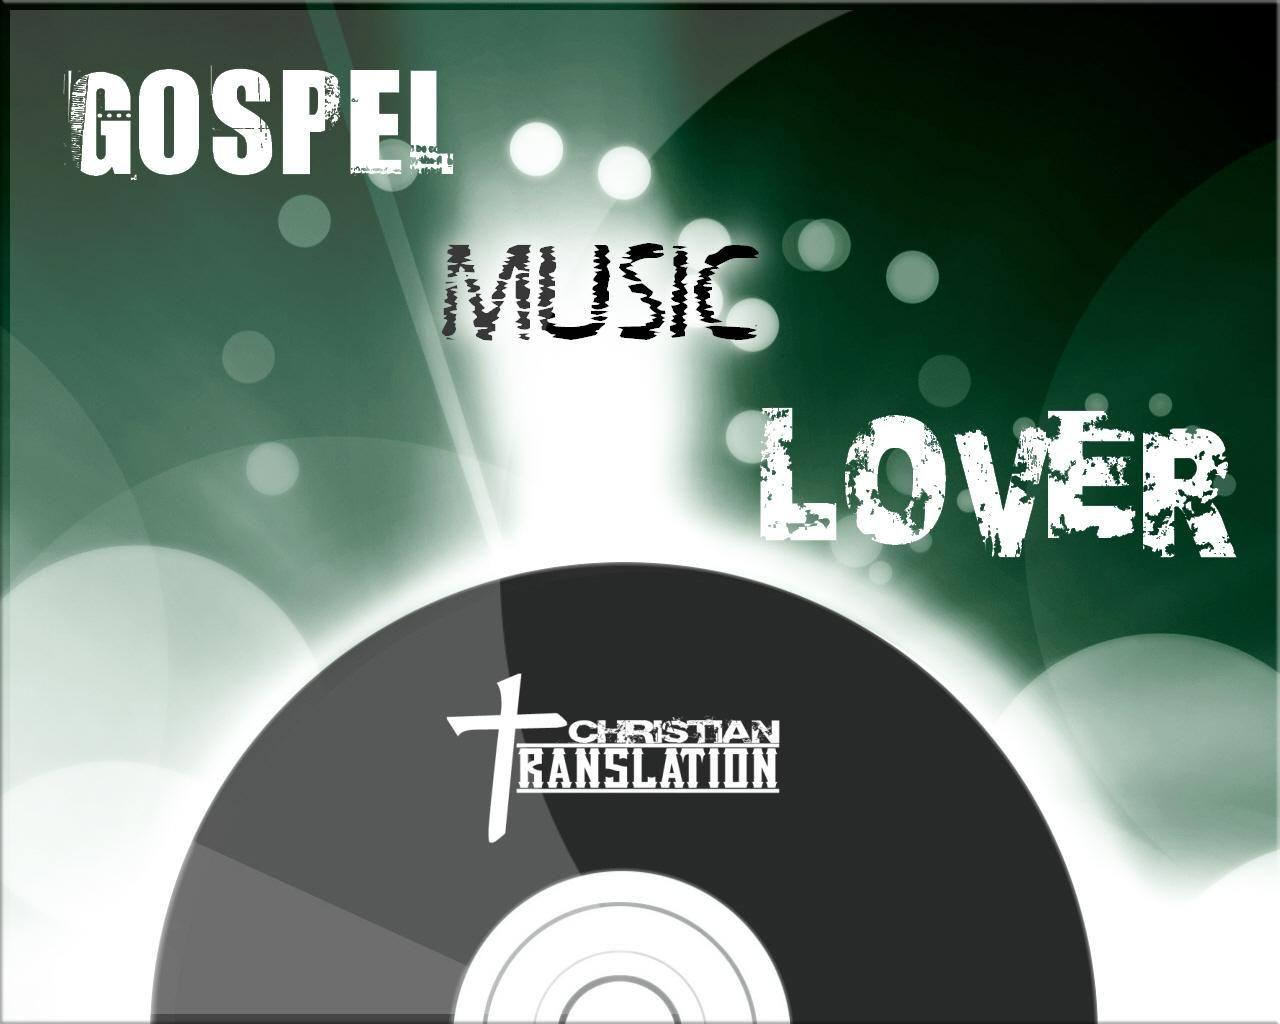 Gospel Music Wallpaper - Christian Wallpapers and Backgrounds